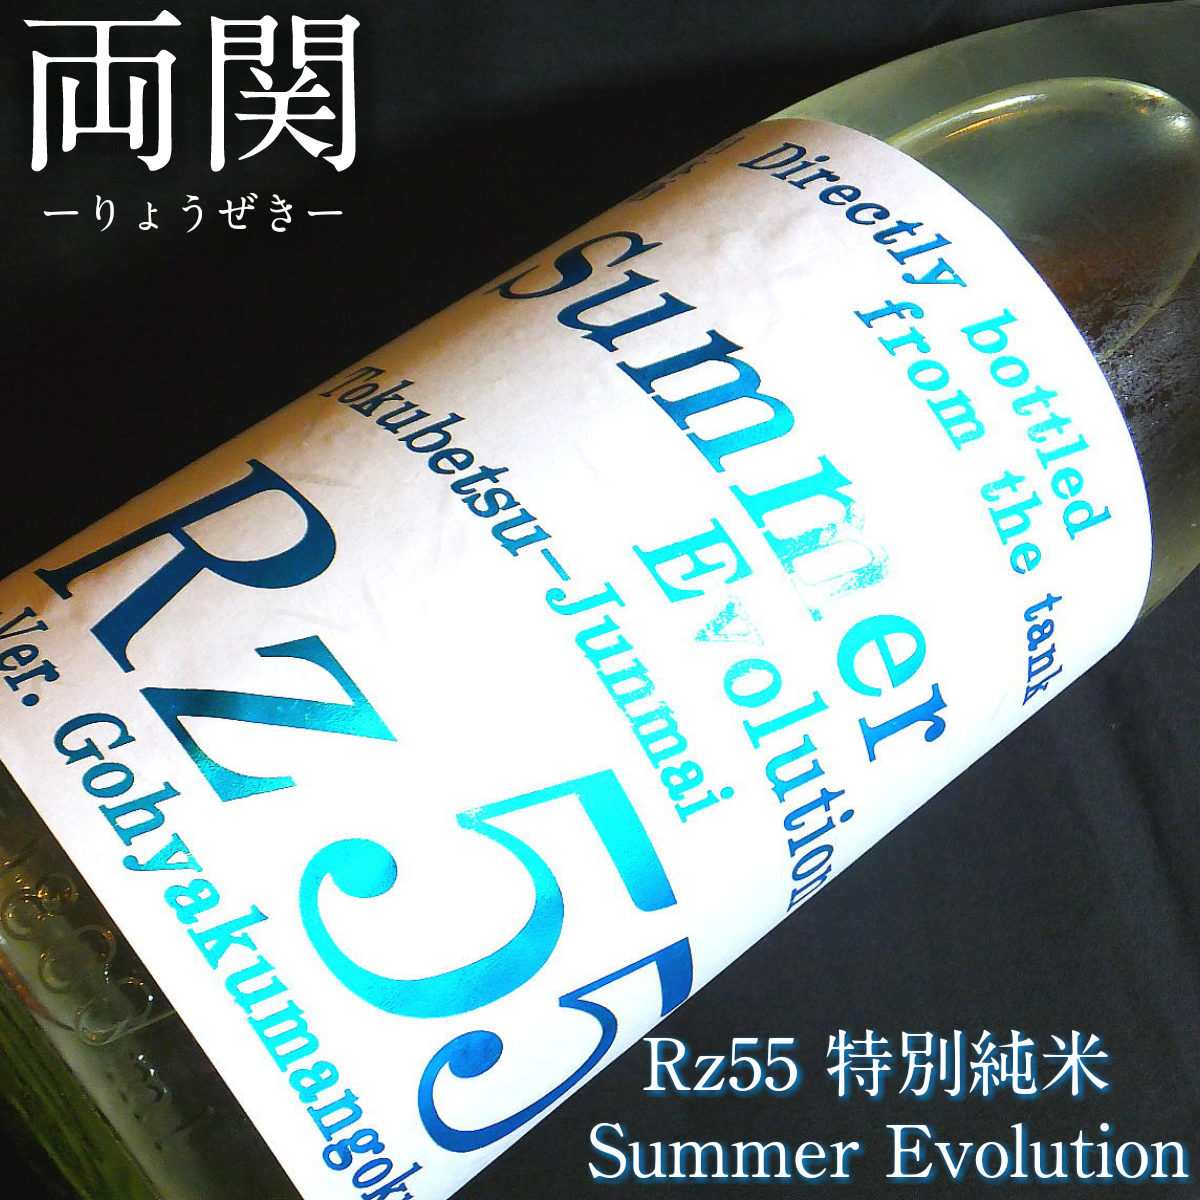 両関 Rz55 特別純米 Summer Evolution 無濾過生酒